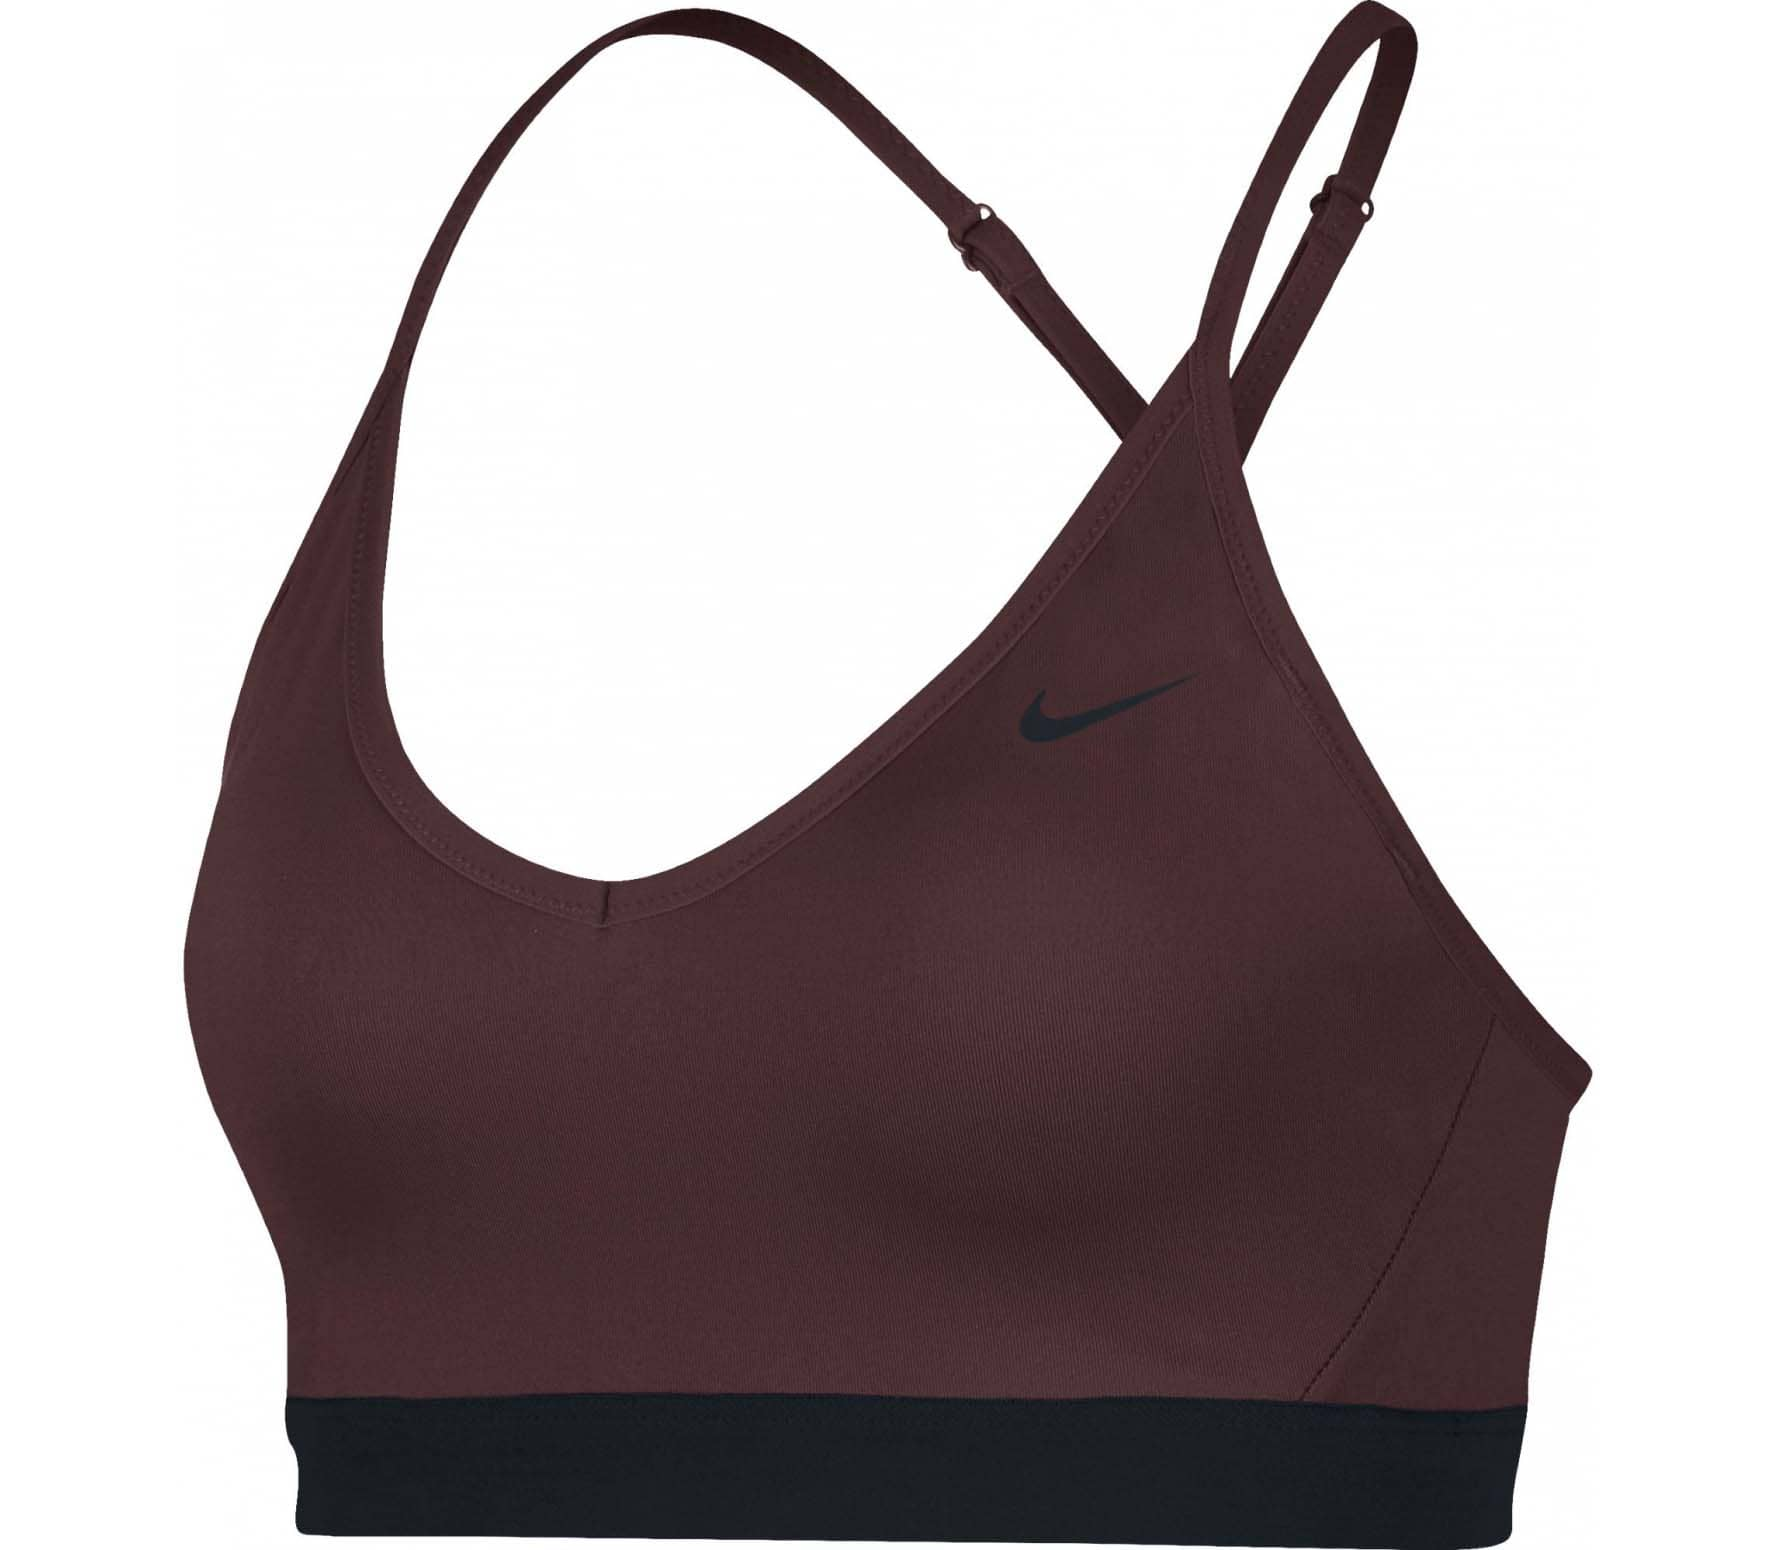 888ecdf644d4a Nike - Indy Light Support women s training bra (red black) - buy it ...